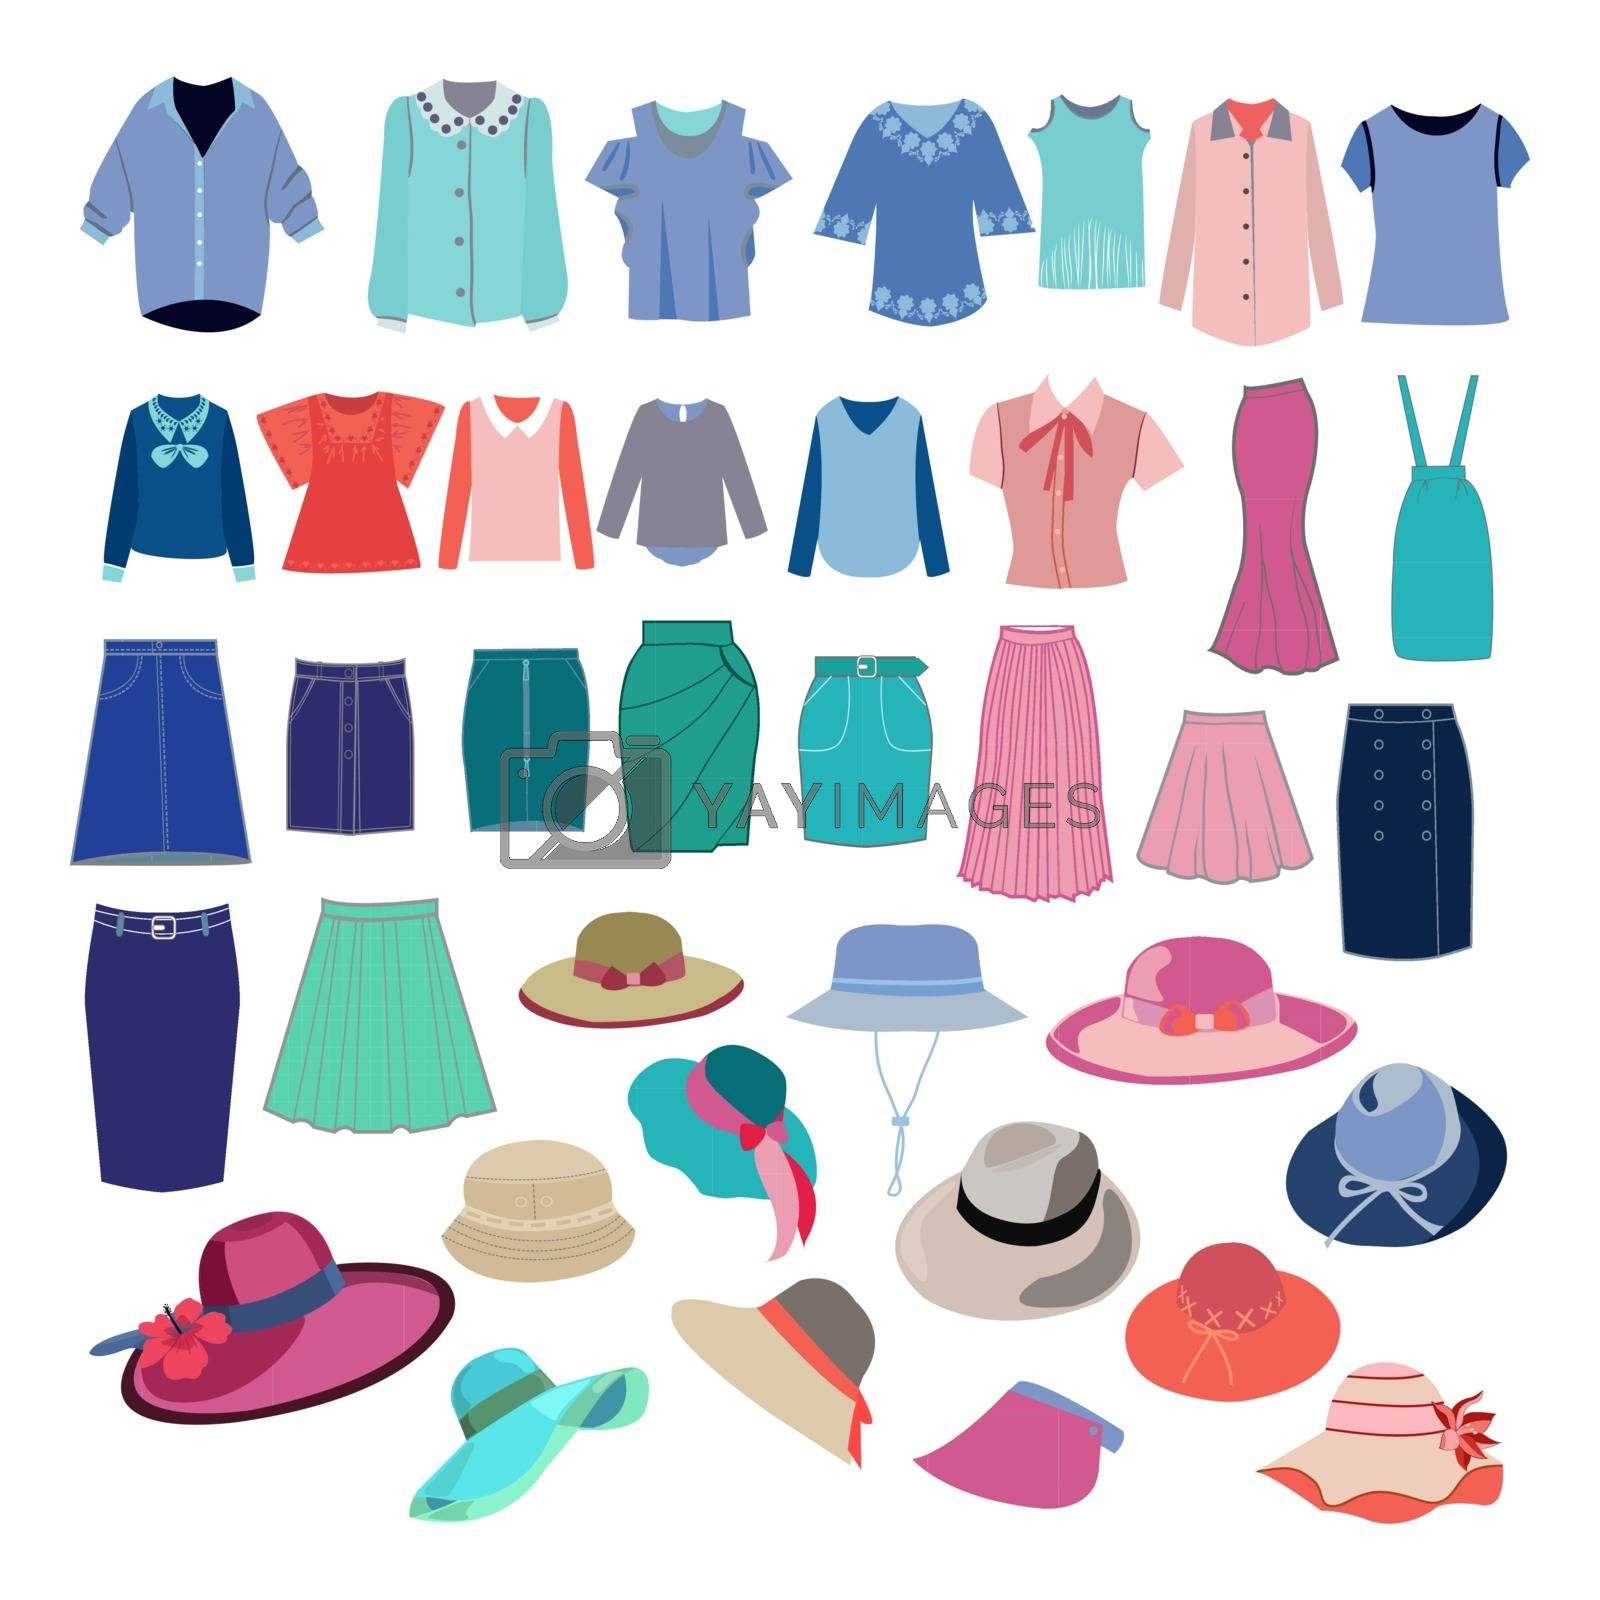 Set with different fashion cloth and accessories collection. Vector fashion women's shirts, skirts, hats for you design.